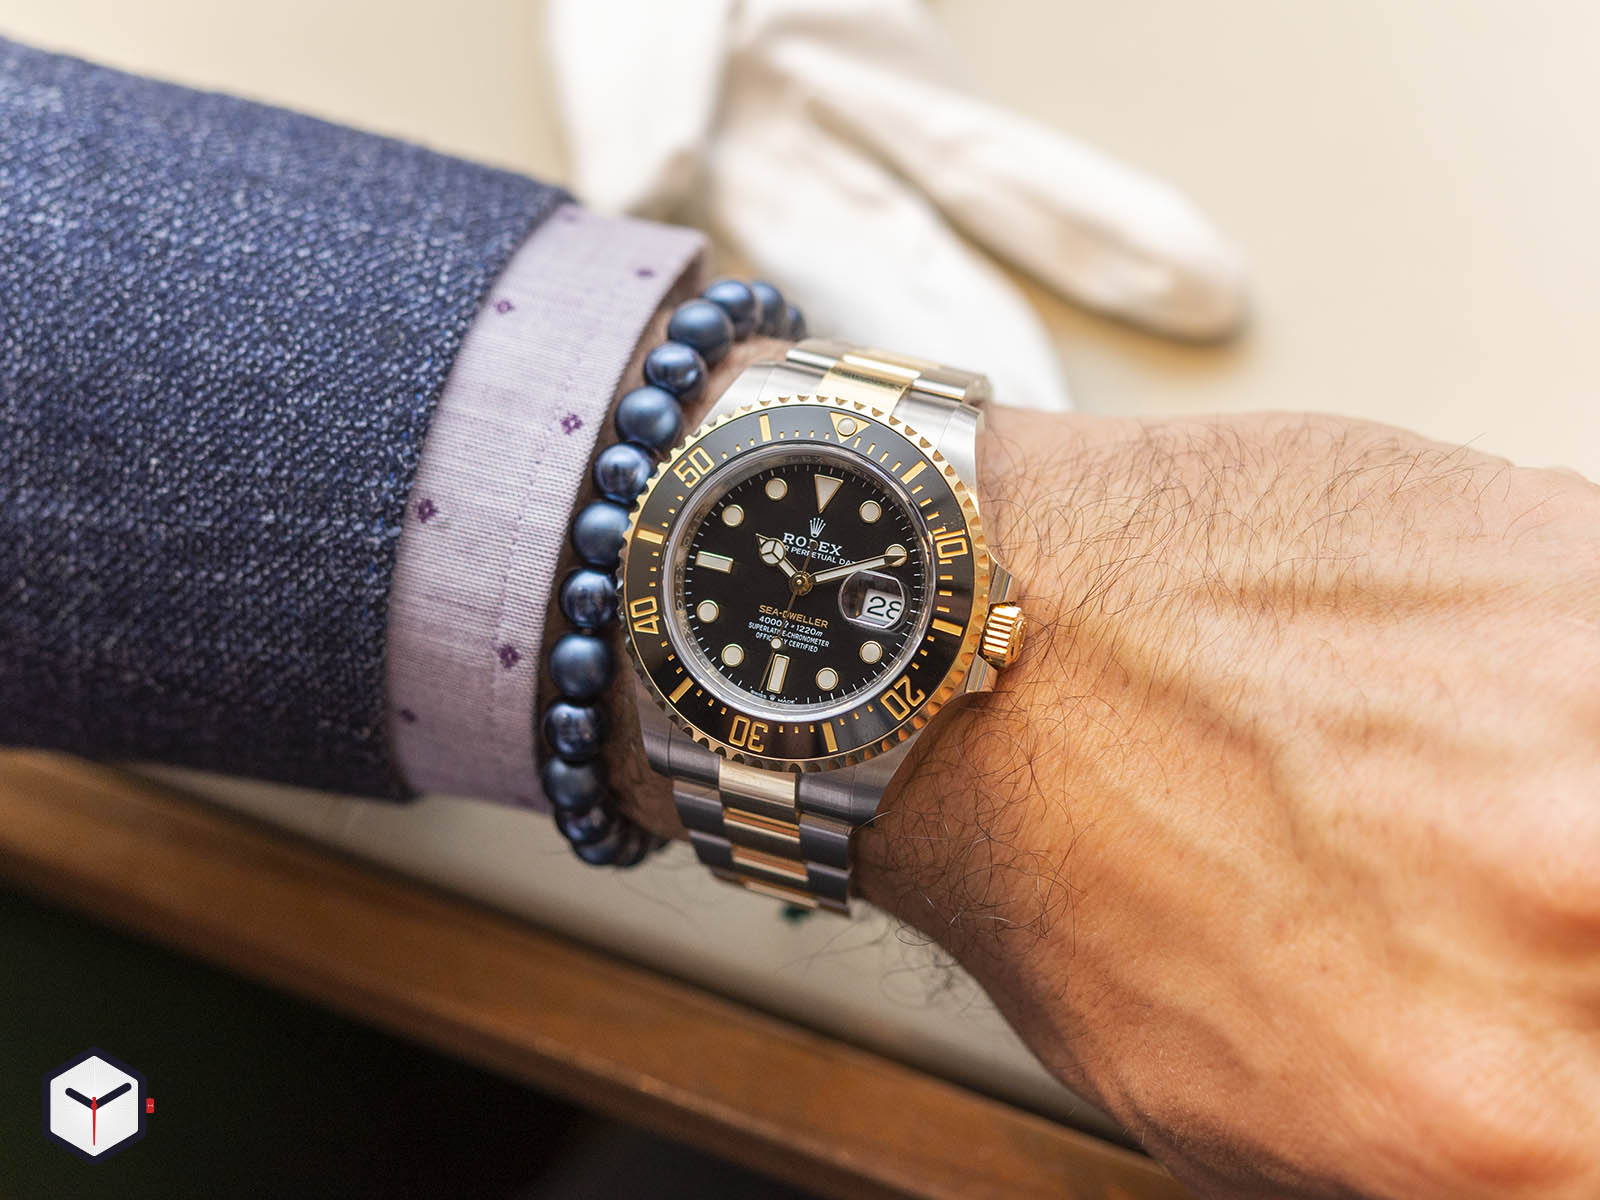 126603-rolex-sea-dweller-two-tone-baselworld-2019-7.jpg